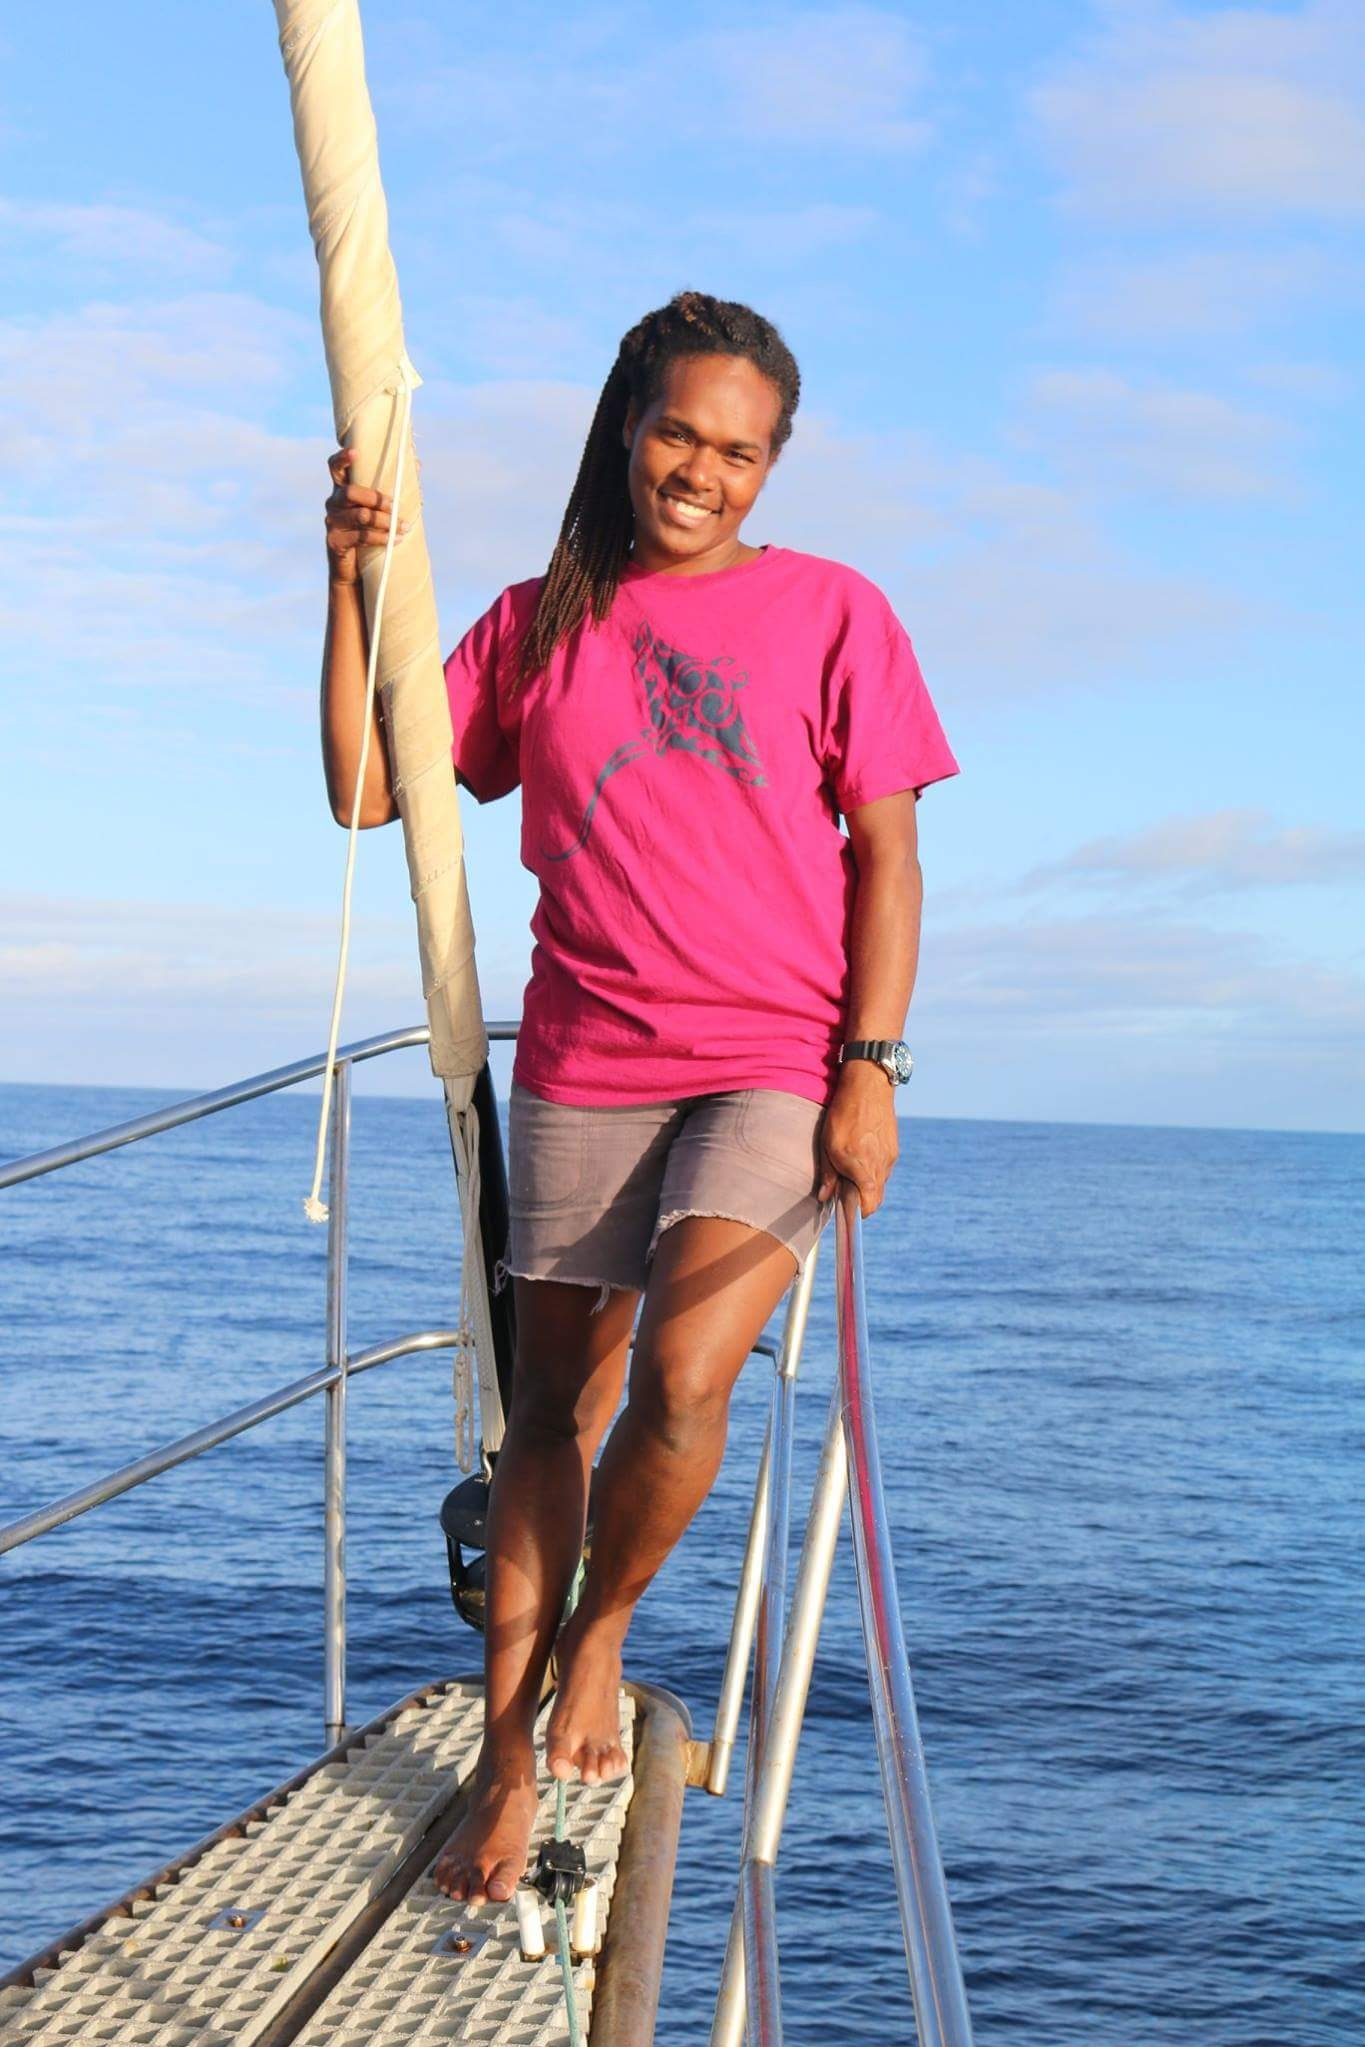 RISU KALOTITI - Guide and Yacht Agent - Risu is an integral part of Port of Call Vanuatu and we are very lucky to have her as part of our team.Risu has experience working on a range of projects on board the Rainbow Warrior with Greenpeace and smaller charities such as Island Reach and OceansWatch delivering marine conservation and sustainable livelihood projects in Vanuatu.After seeing the destruction caused by cyclone Pam in 2015 she has set up a coral garden in her village of Pango near Port Vila, Vanuatu and engages with local children to help restore the reefs.She is also a surf coach for Solwota Sista, a branch of The Vanuatu Surfing Association, and encourages and empowers female surfers to get in the water and realise their potential.Risu is passionate about marine conservation and has had the opportunity to travel by boat to many corners of the Vanuatu ArchipelagoWe at Port of Call Vanuatu highly recommend Risu Kalotiti as your Vanuatu guide. Risu is fountain of local knowledge, this combined with her joyful and friendly personality will help to guarantee your time in Vanuatu will be an interesting and very memorable one.